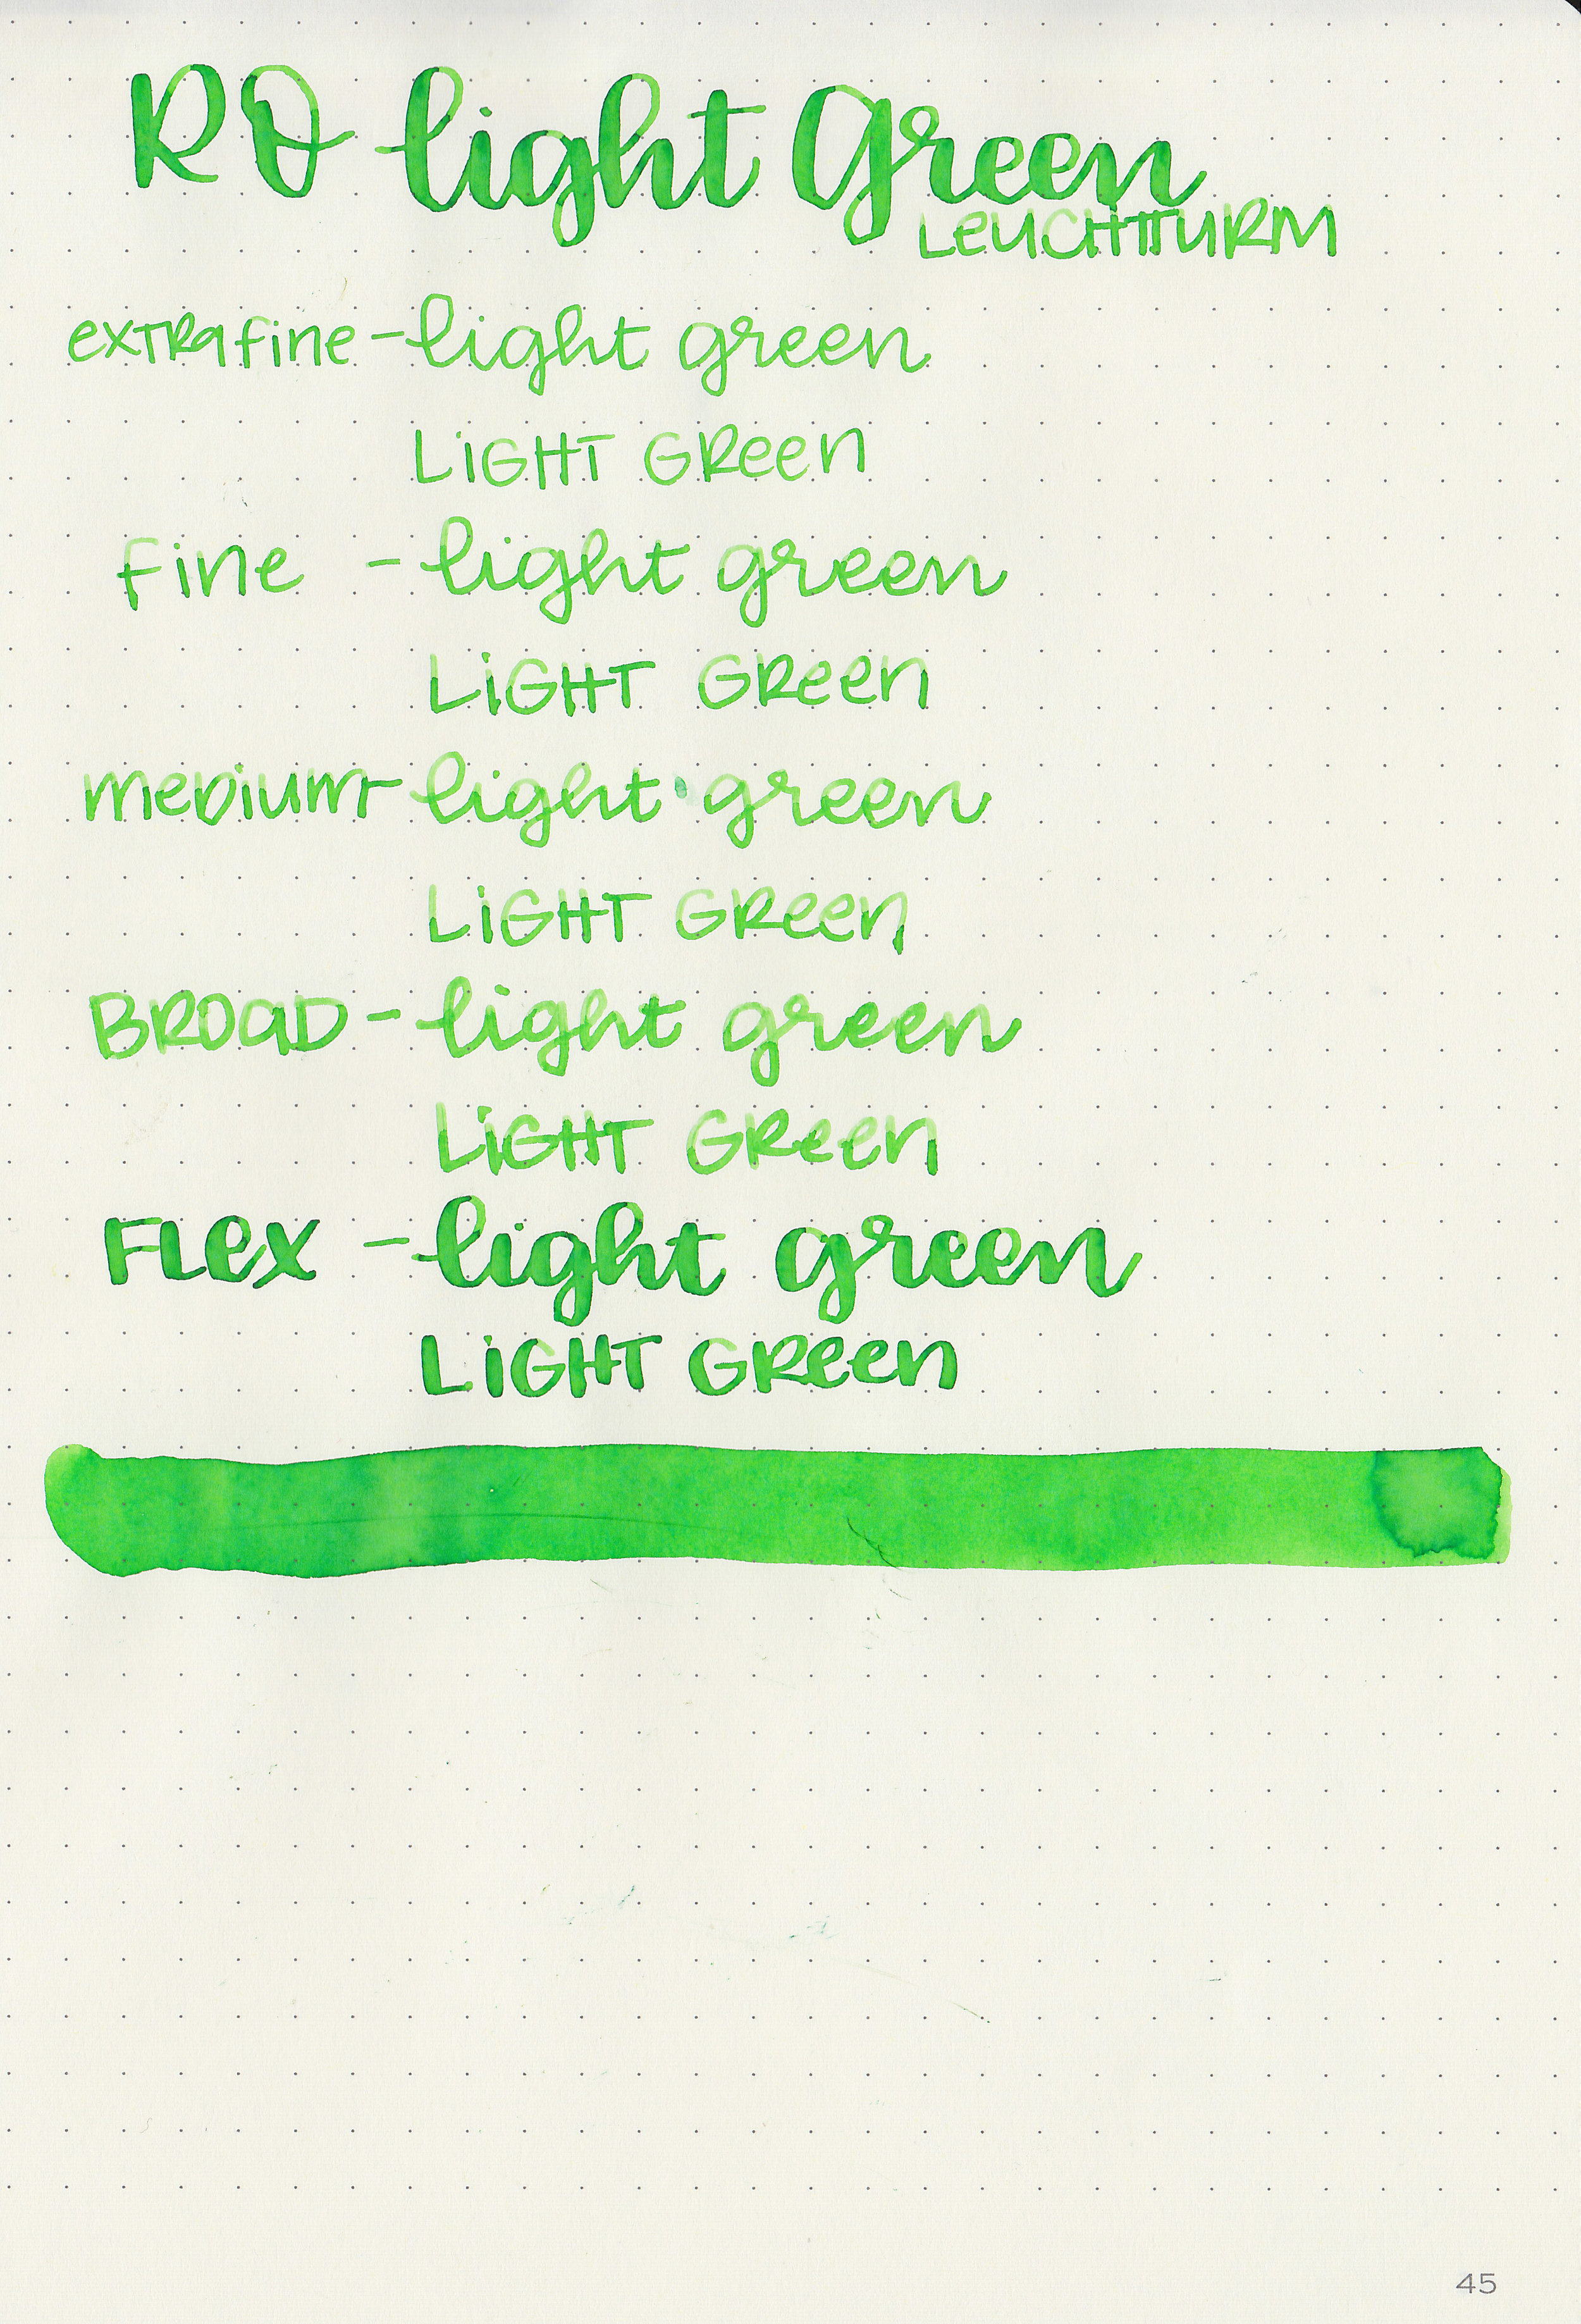 ro-light-green-13.jpg